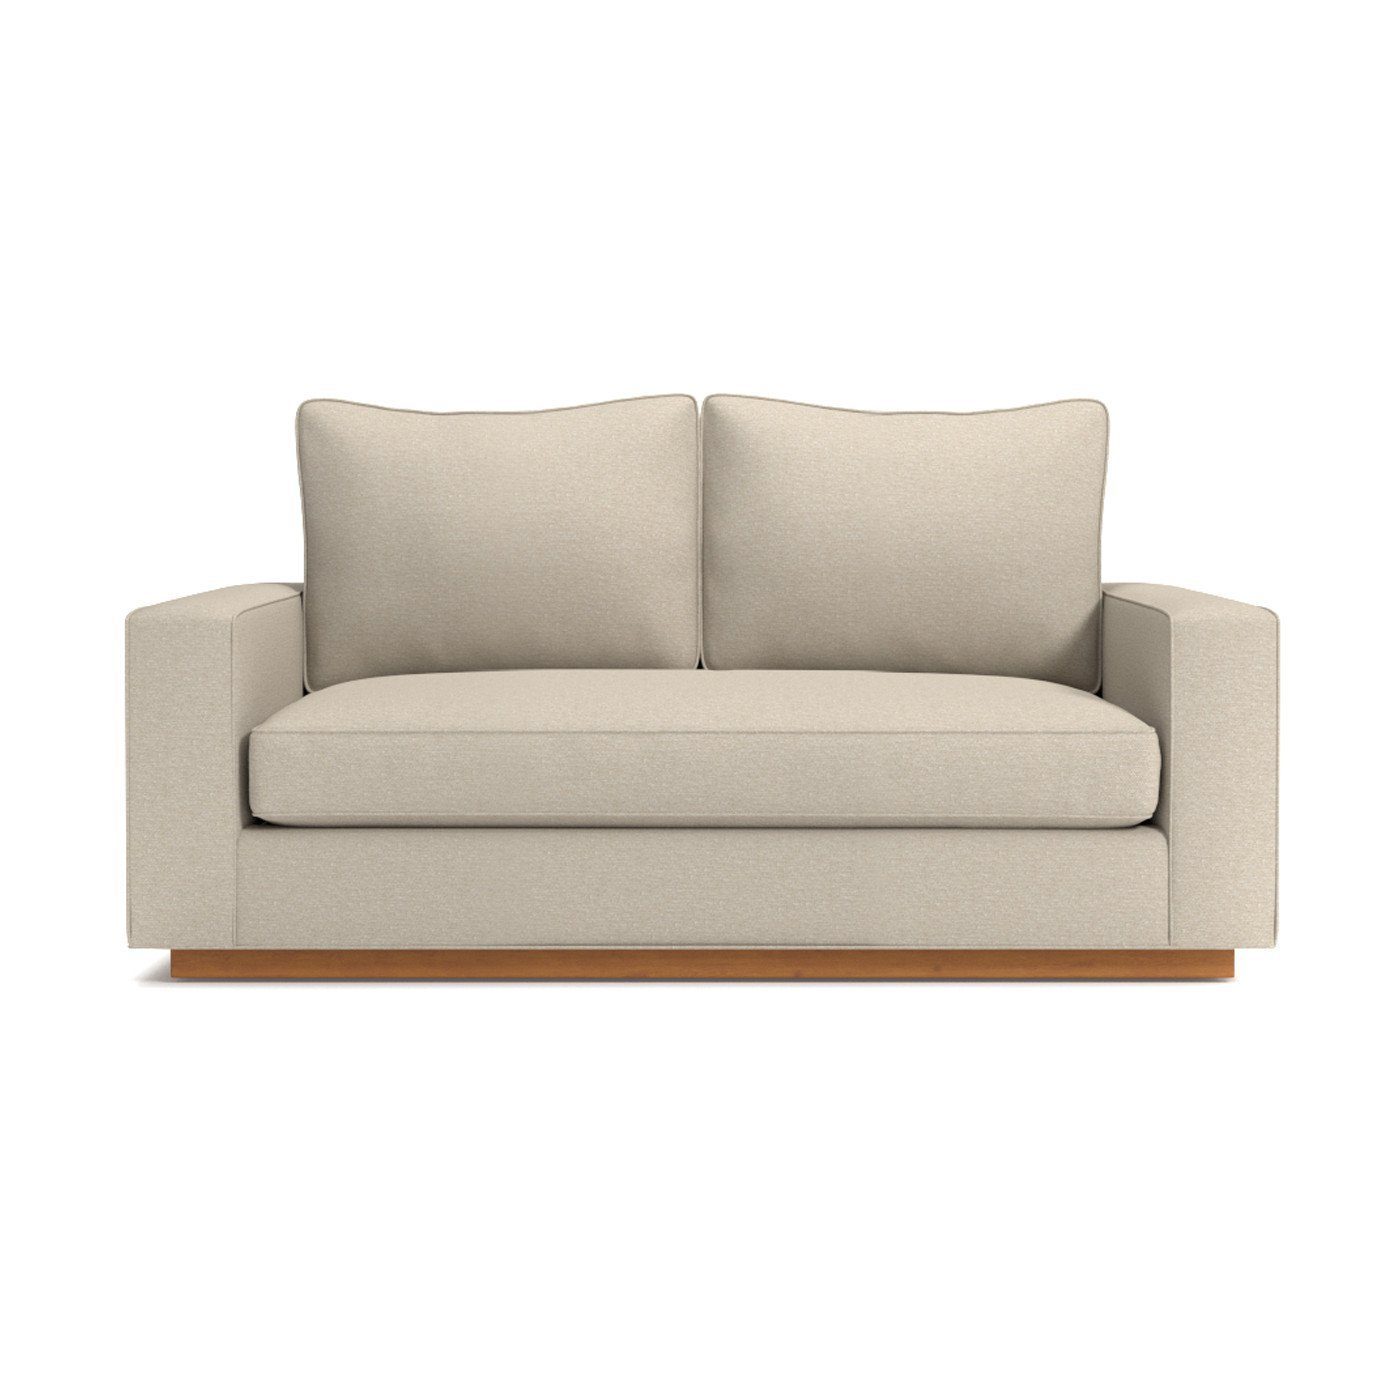 Amazon.com: Apt2B Harper Apartment Size Sofa, Beige, 62